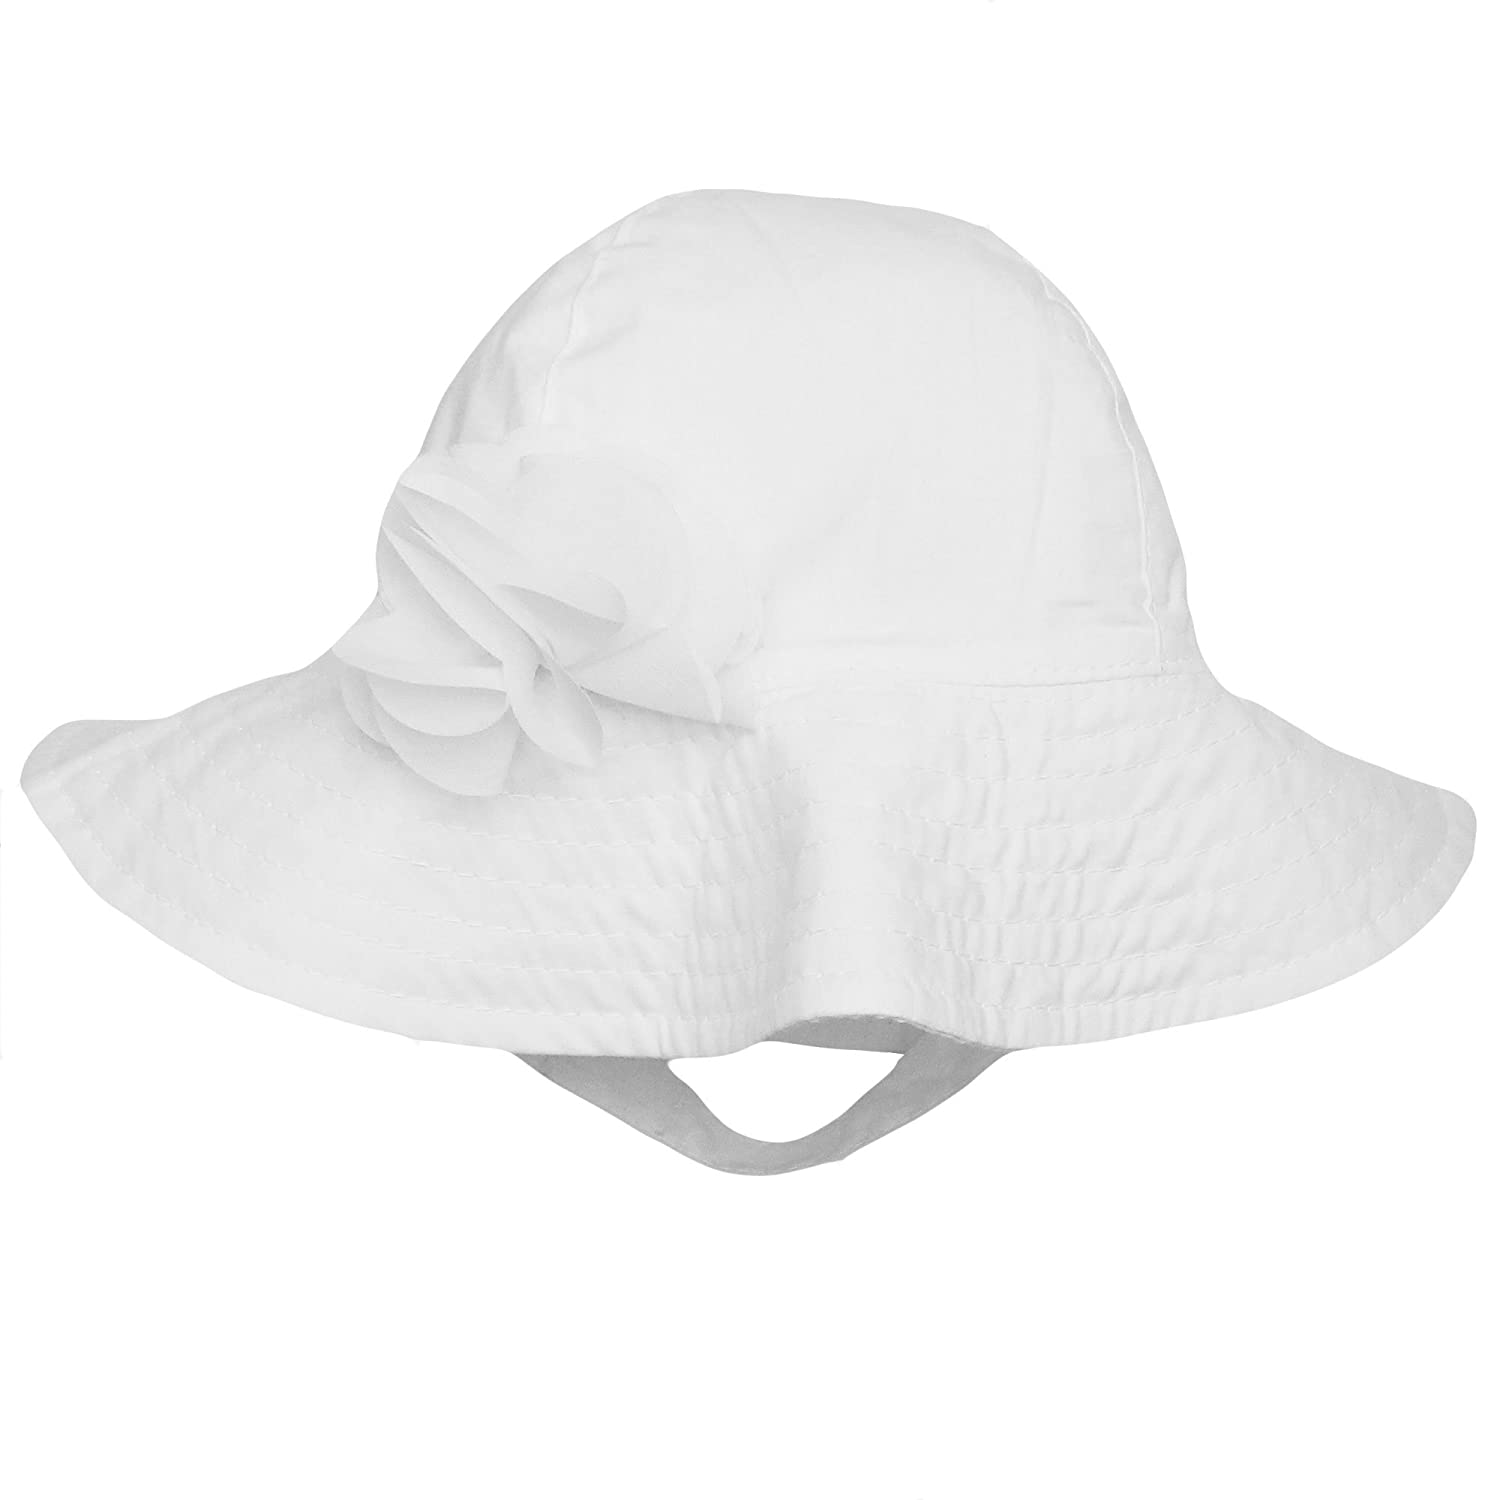 5b0ce9deee1 Amazon.com  Carter s Cotton Sun Hat For Baby Girls Sun Protection Hat Solid  White 0-9 Months  Baby